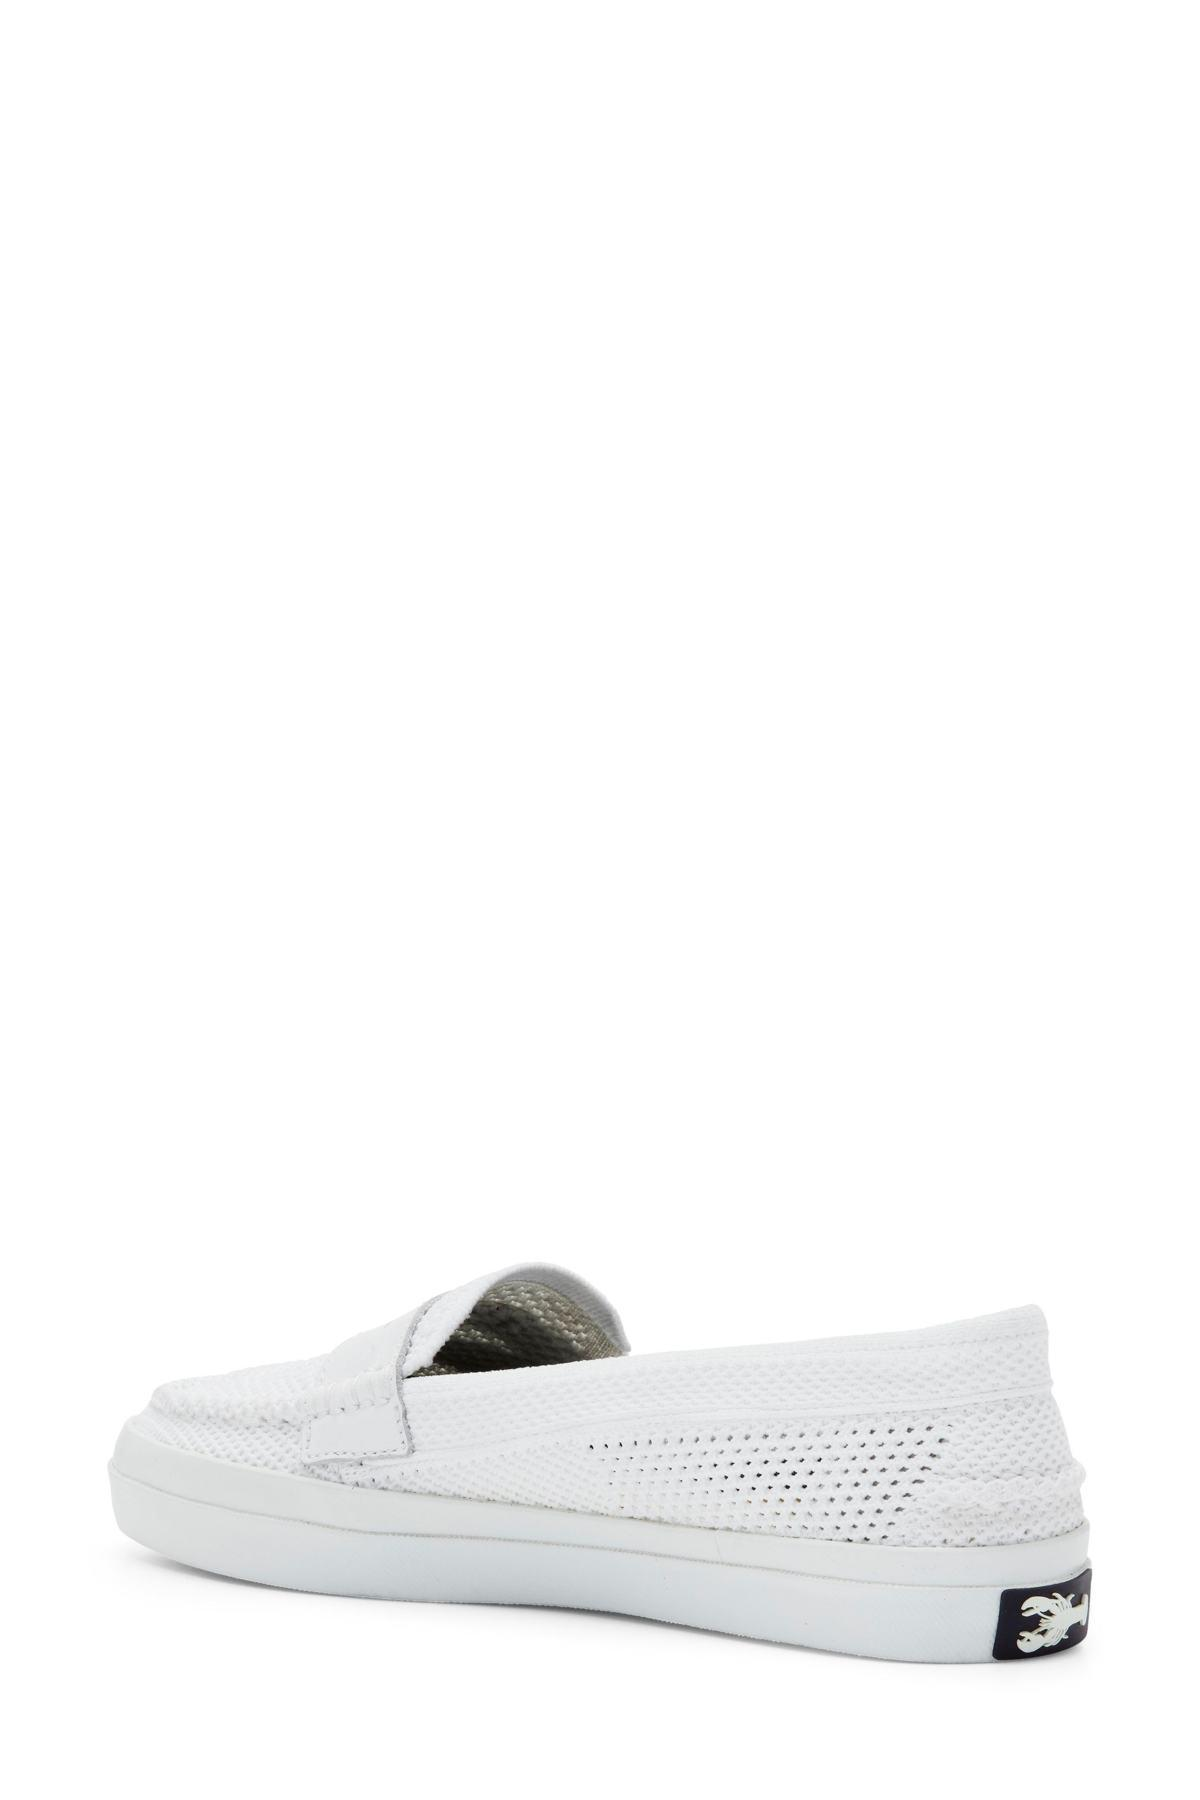 4614242ded3 Lyst - Cole Haan Pinch Stitchlite(tm) Loafer (women) in White